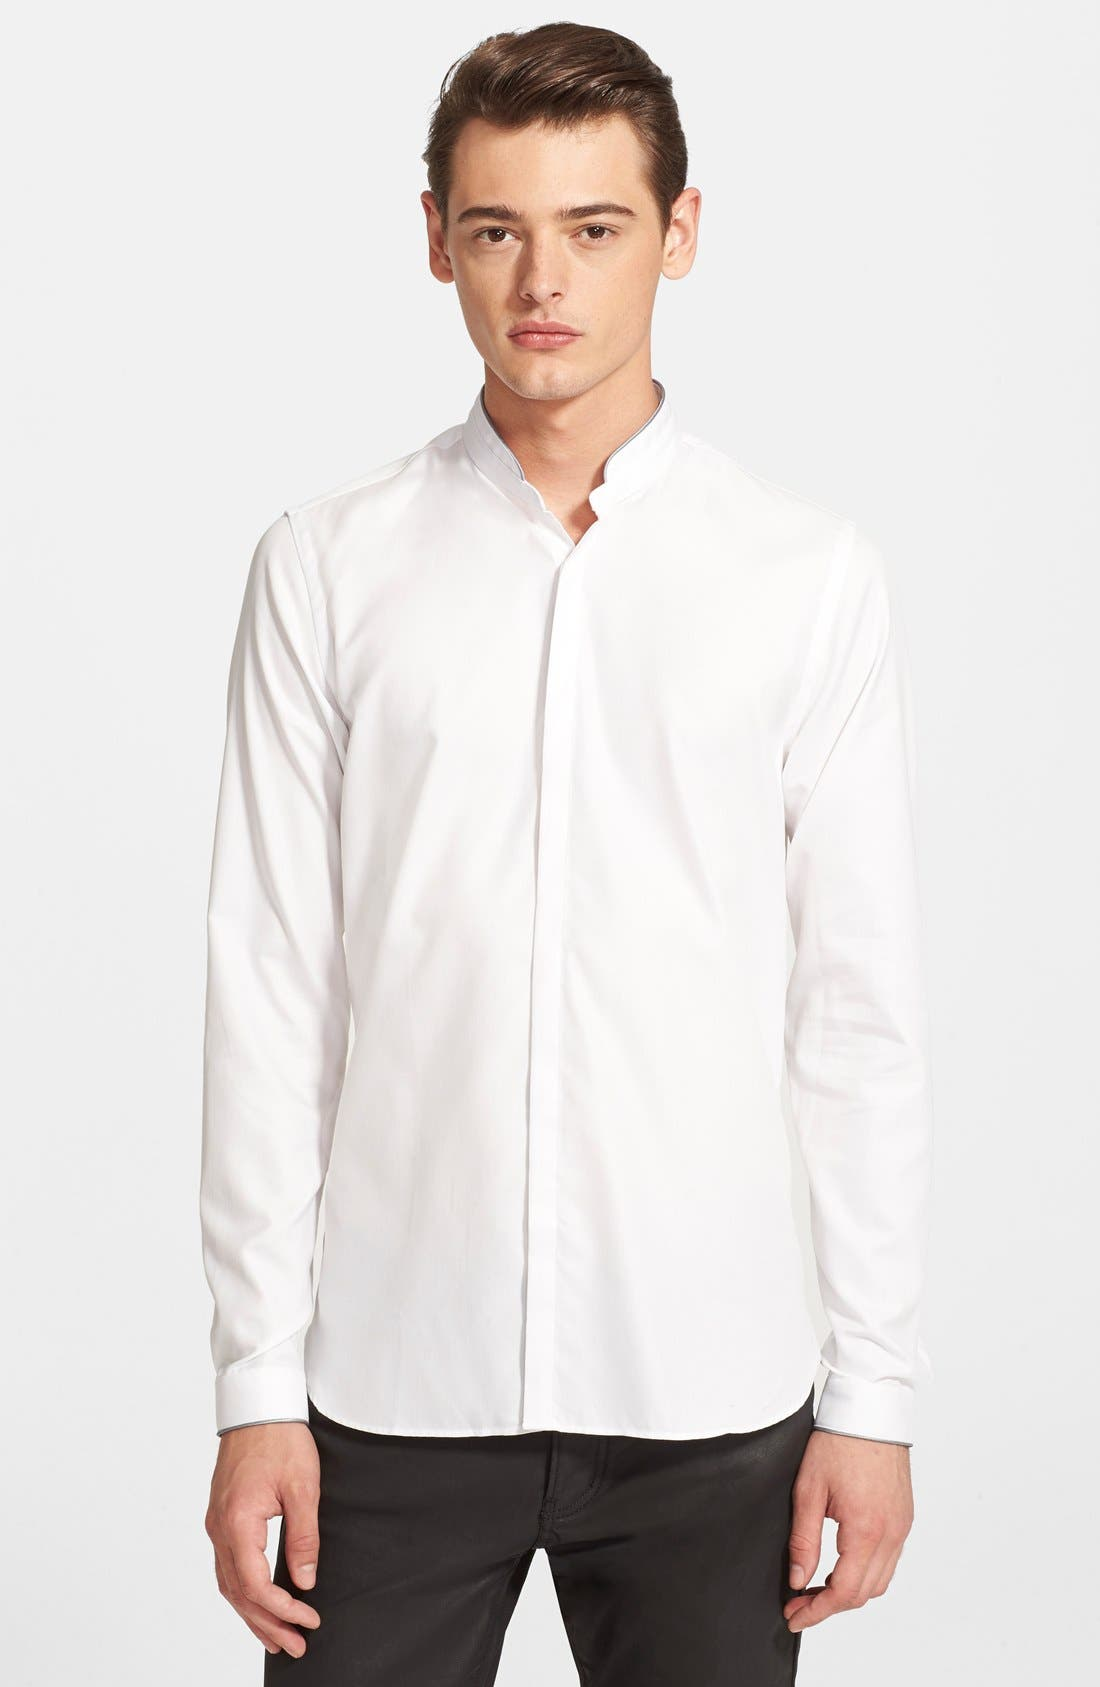 Alternate Image 1 Selected - The Kooples Fitted Band Collar Dress Shirt